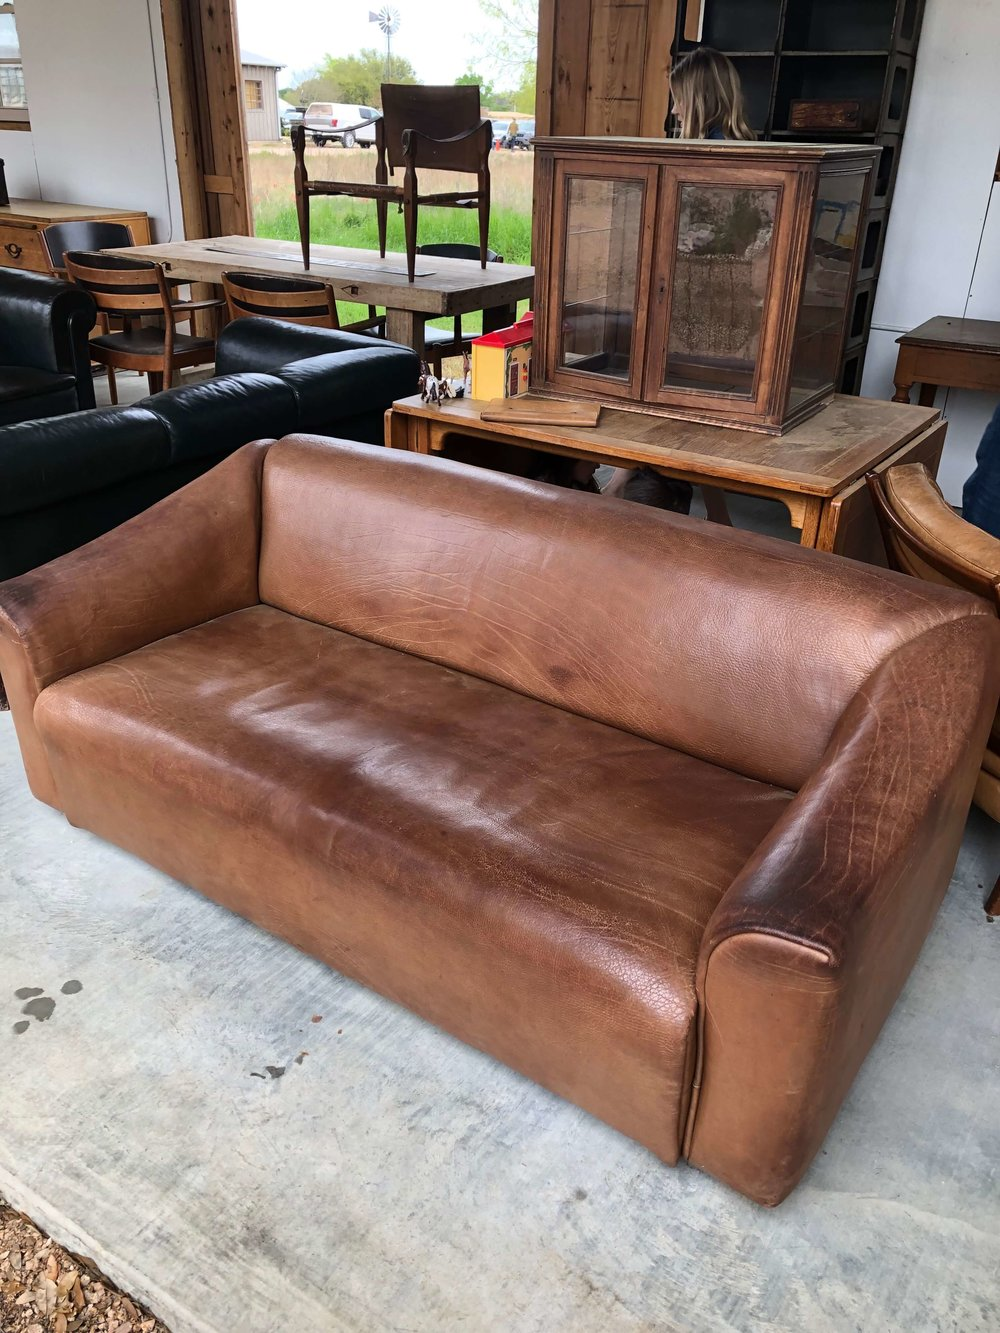 Vintage leather sofa | Eneby Home, The Compound, Round Top Antiques Fair